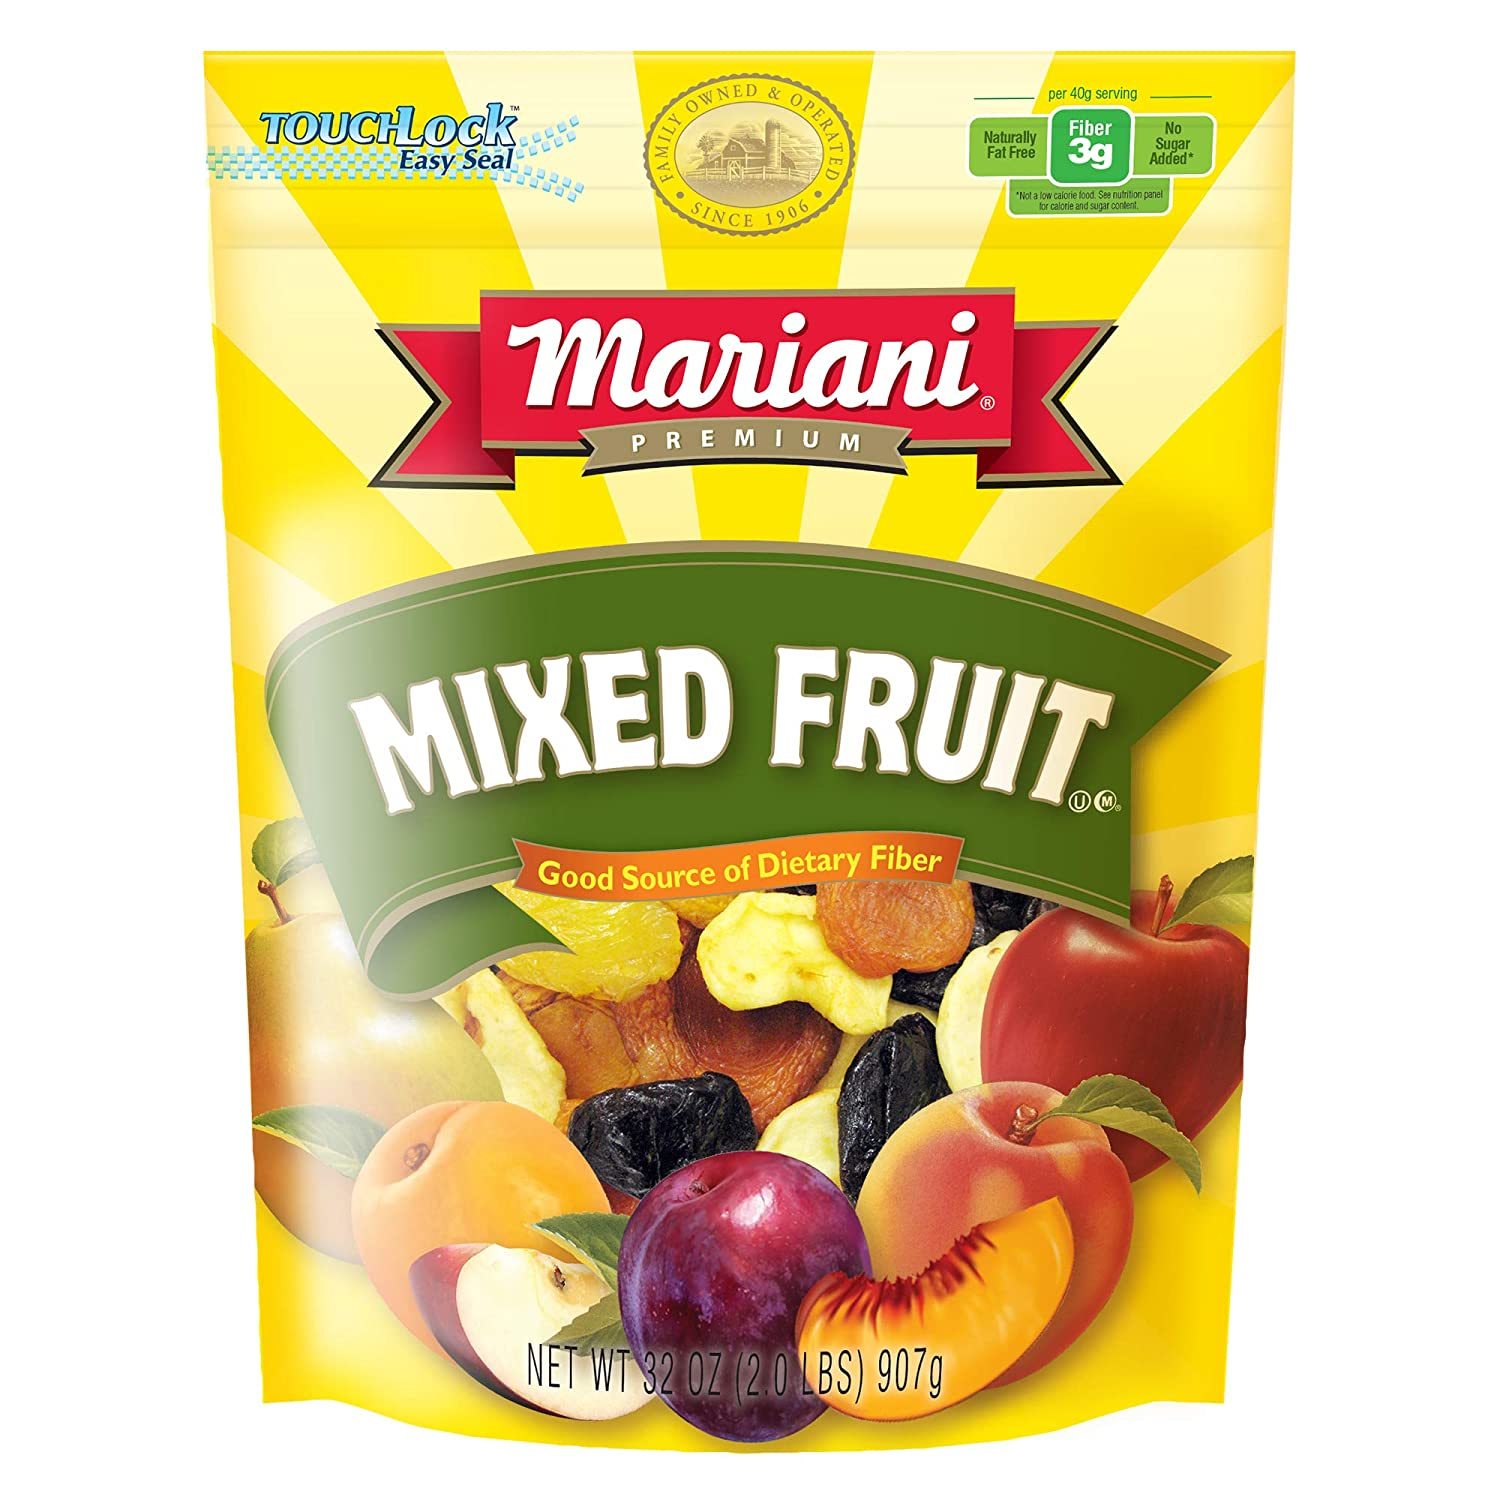 Mariani Mixed Fruits - 32oz (Pack of 1) – Perfect Blend of Orchard Fruits, No Sugar Added, Good Source of Dietary Fiber, Gluten Free, Vegan, Fat Free, Cholesterol Free, NonGMO, Resealable Bag - Healthy Snack for Kids & Adults